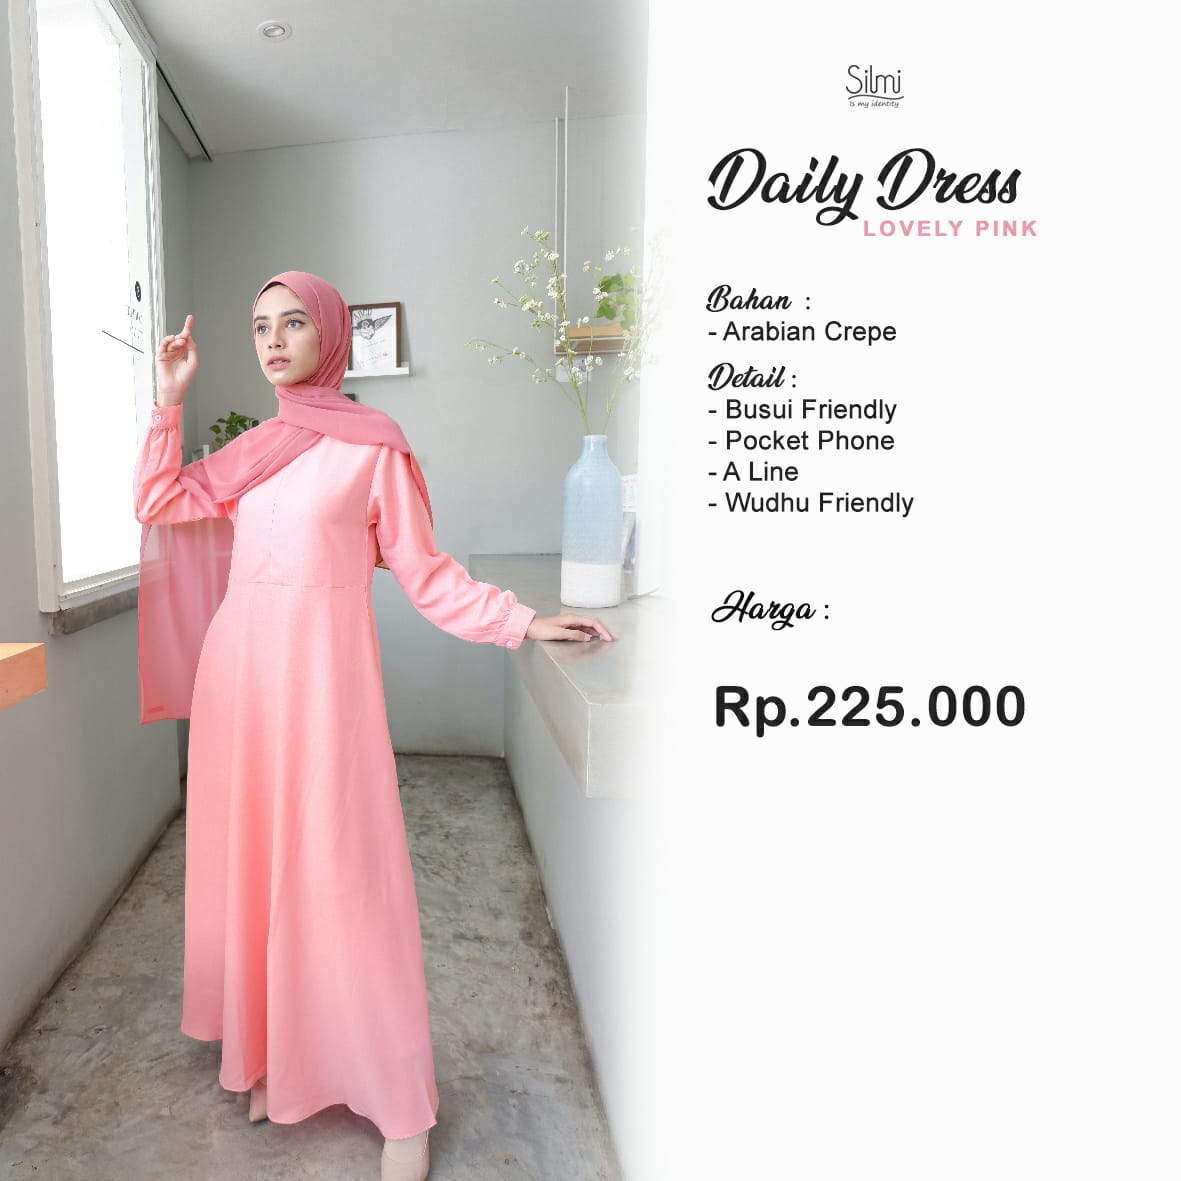 Silmi Daily Dress Arabian Crepe Lovely Pink